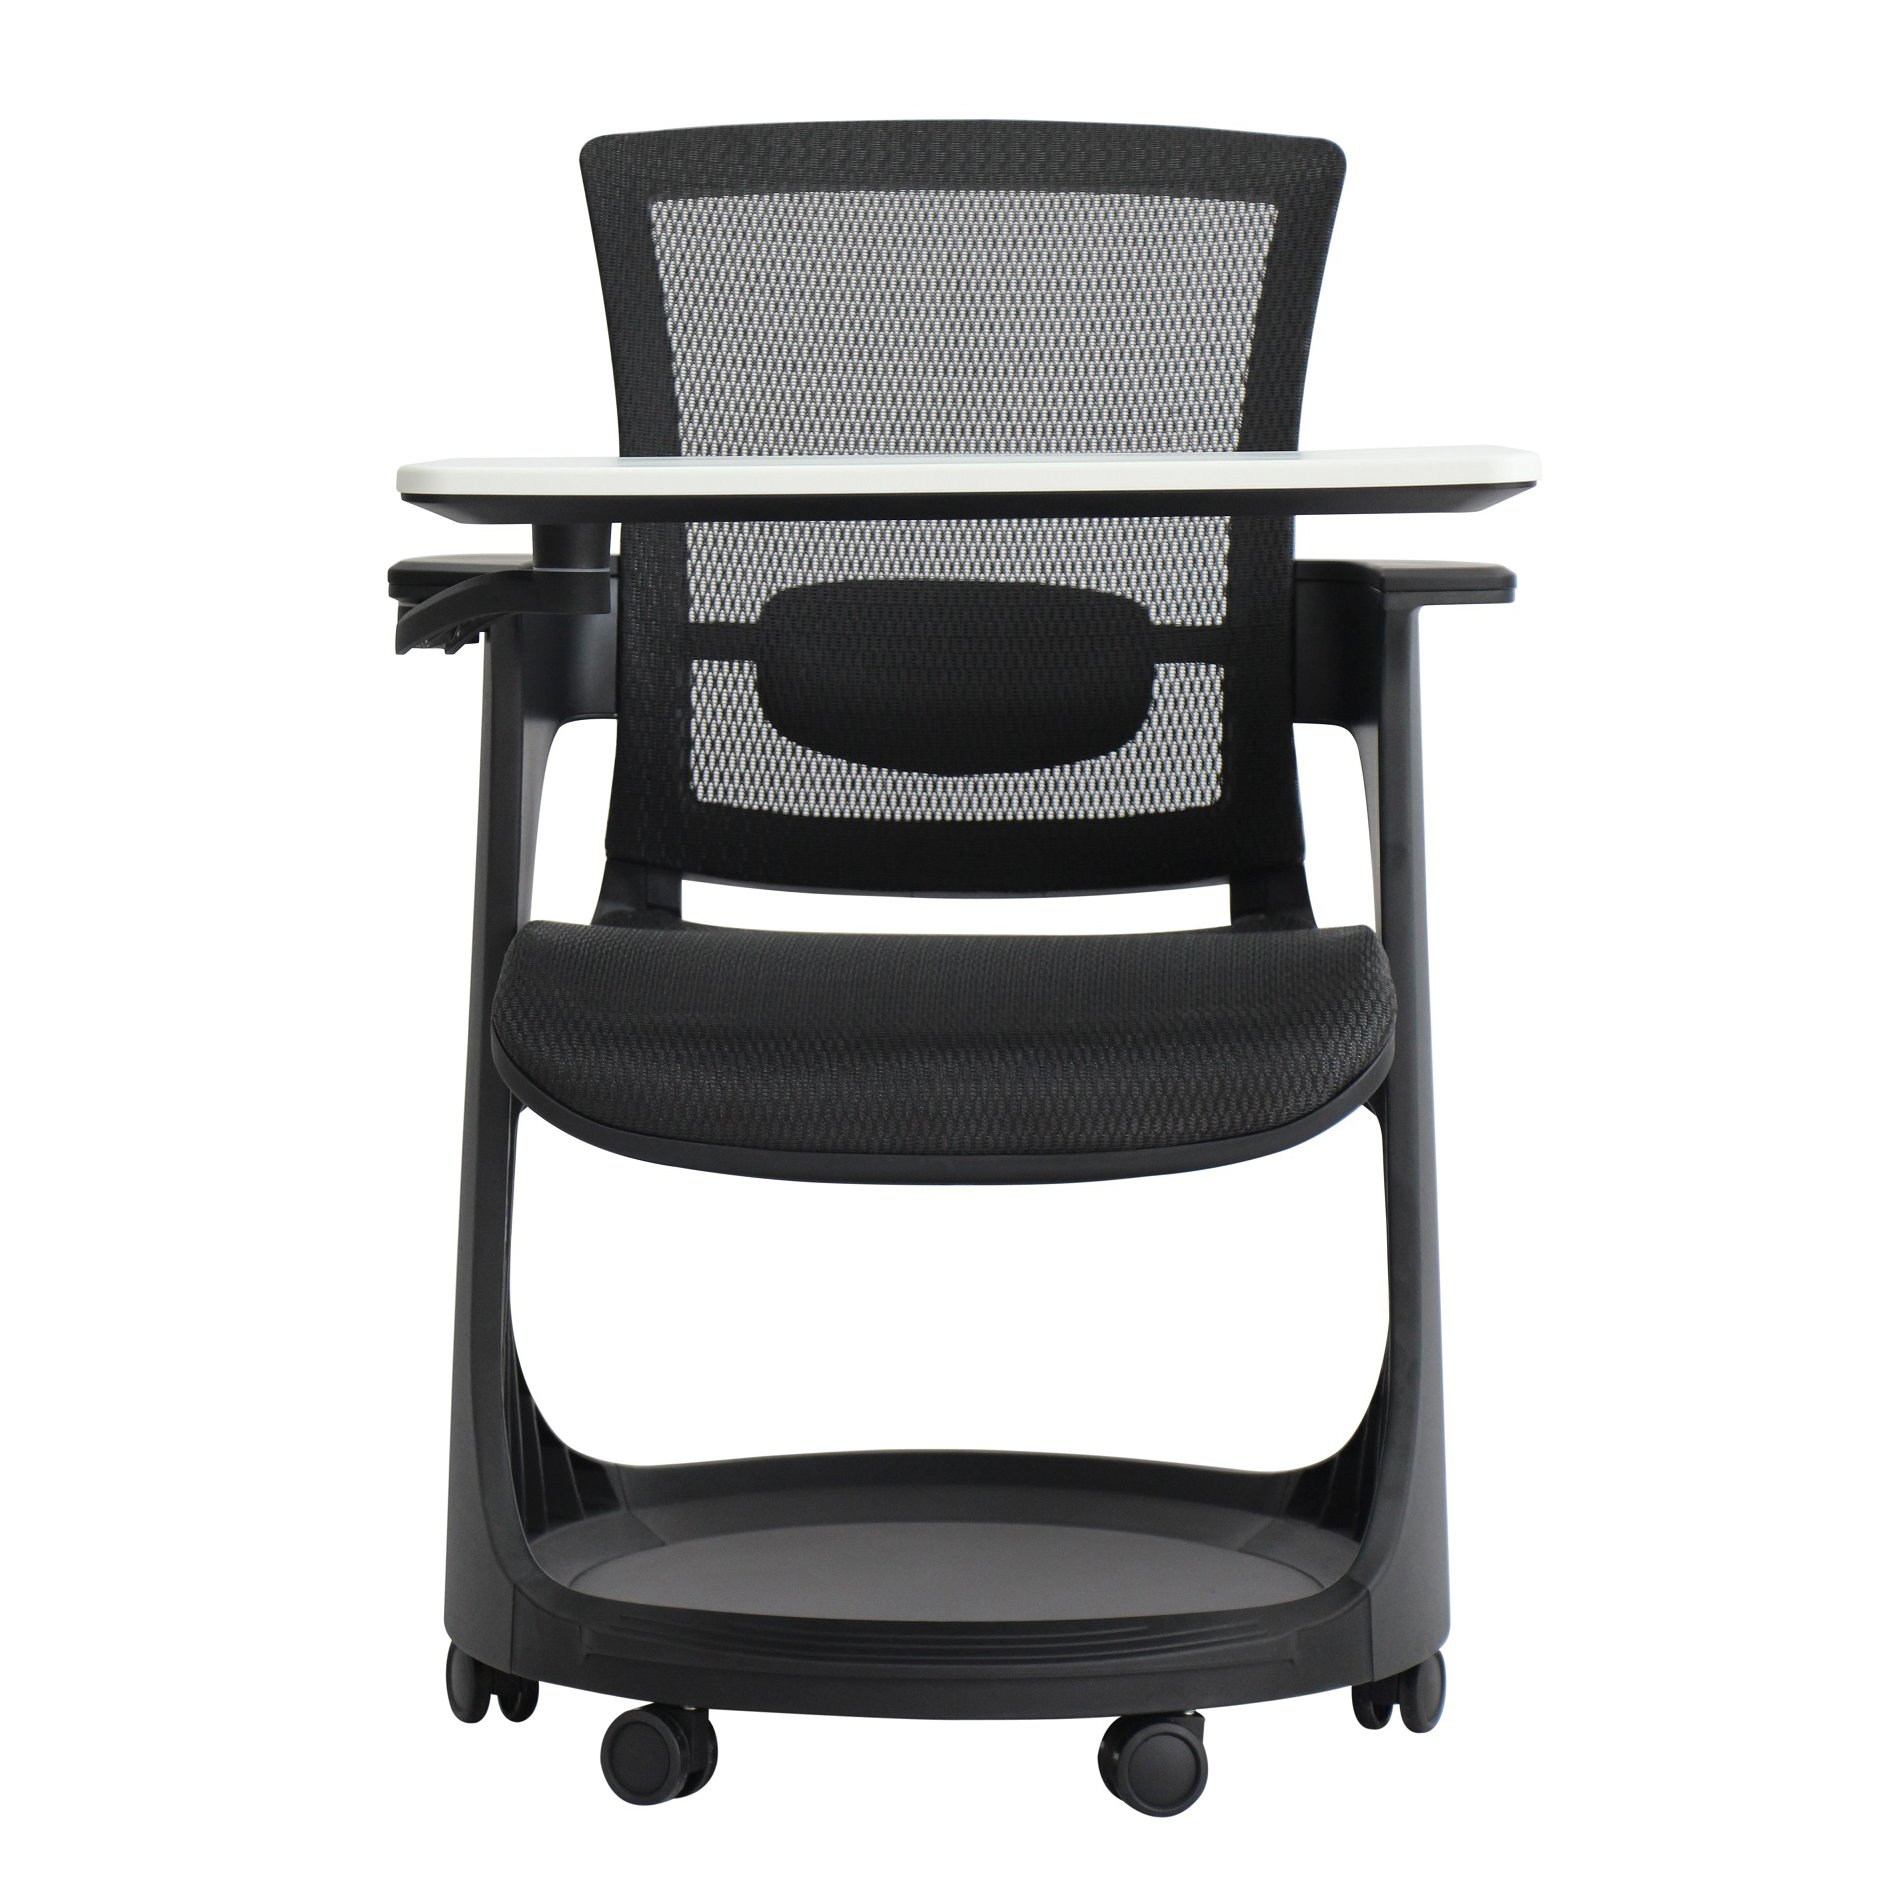 Eduskate Mobile Tablet Chair Black Mesh Front View